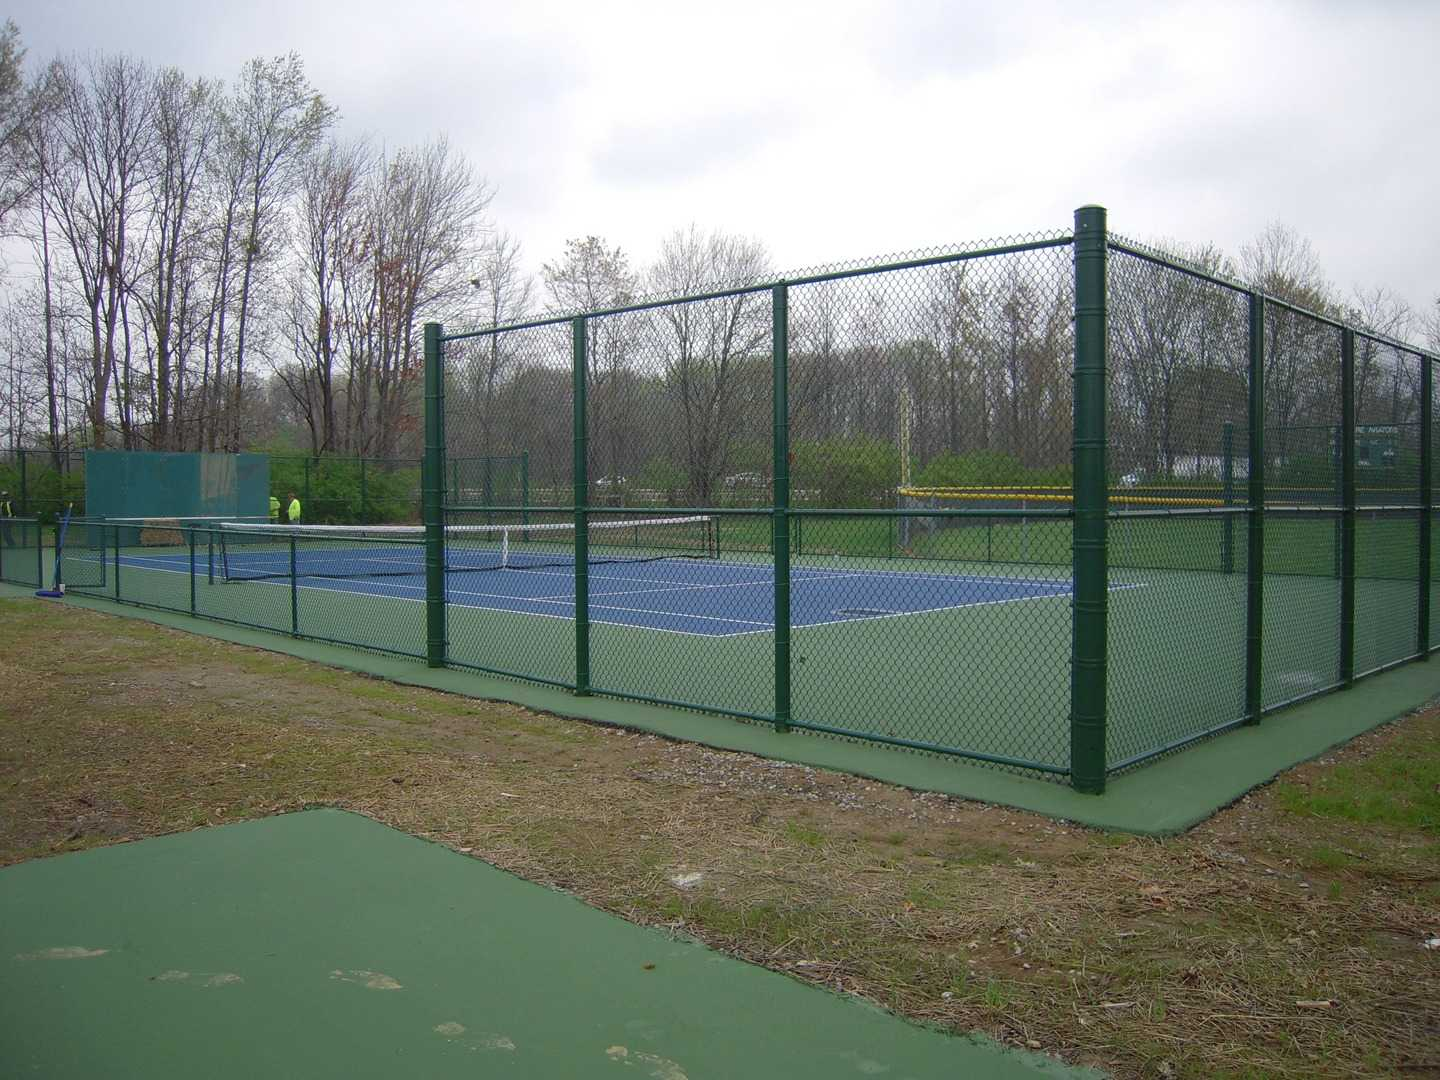 There is only 31 days until tryouts on the tennis courts. They will be held on the one-year-old tennis courts. This is the first time boy's tryouts will be held on the courts. (PHOTO BY MICHAEL TEETS)